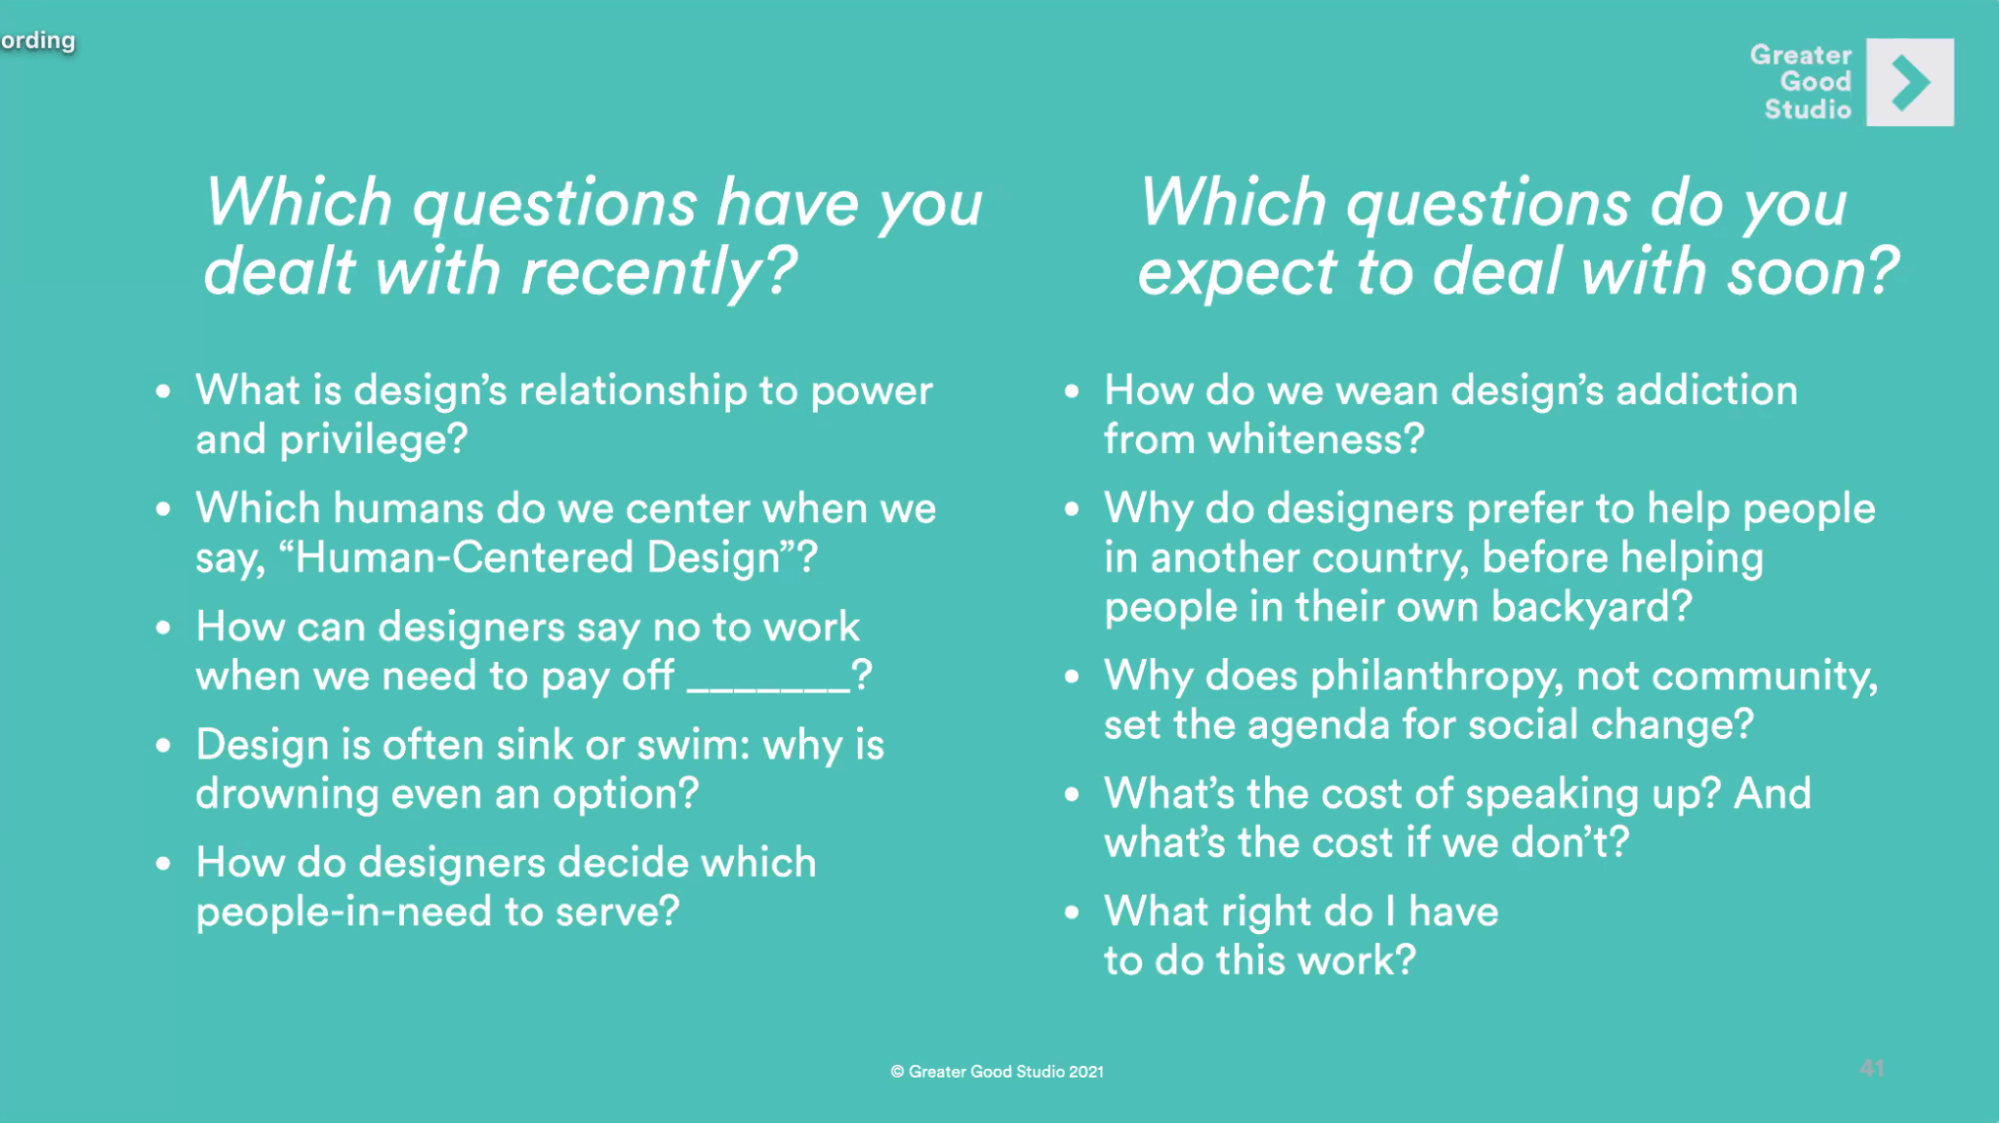 Key slide from George's talk whichh questions 'Which questions have you dealt with recently?' and 'Which questions do you expect to deal with soon?'